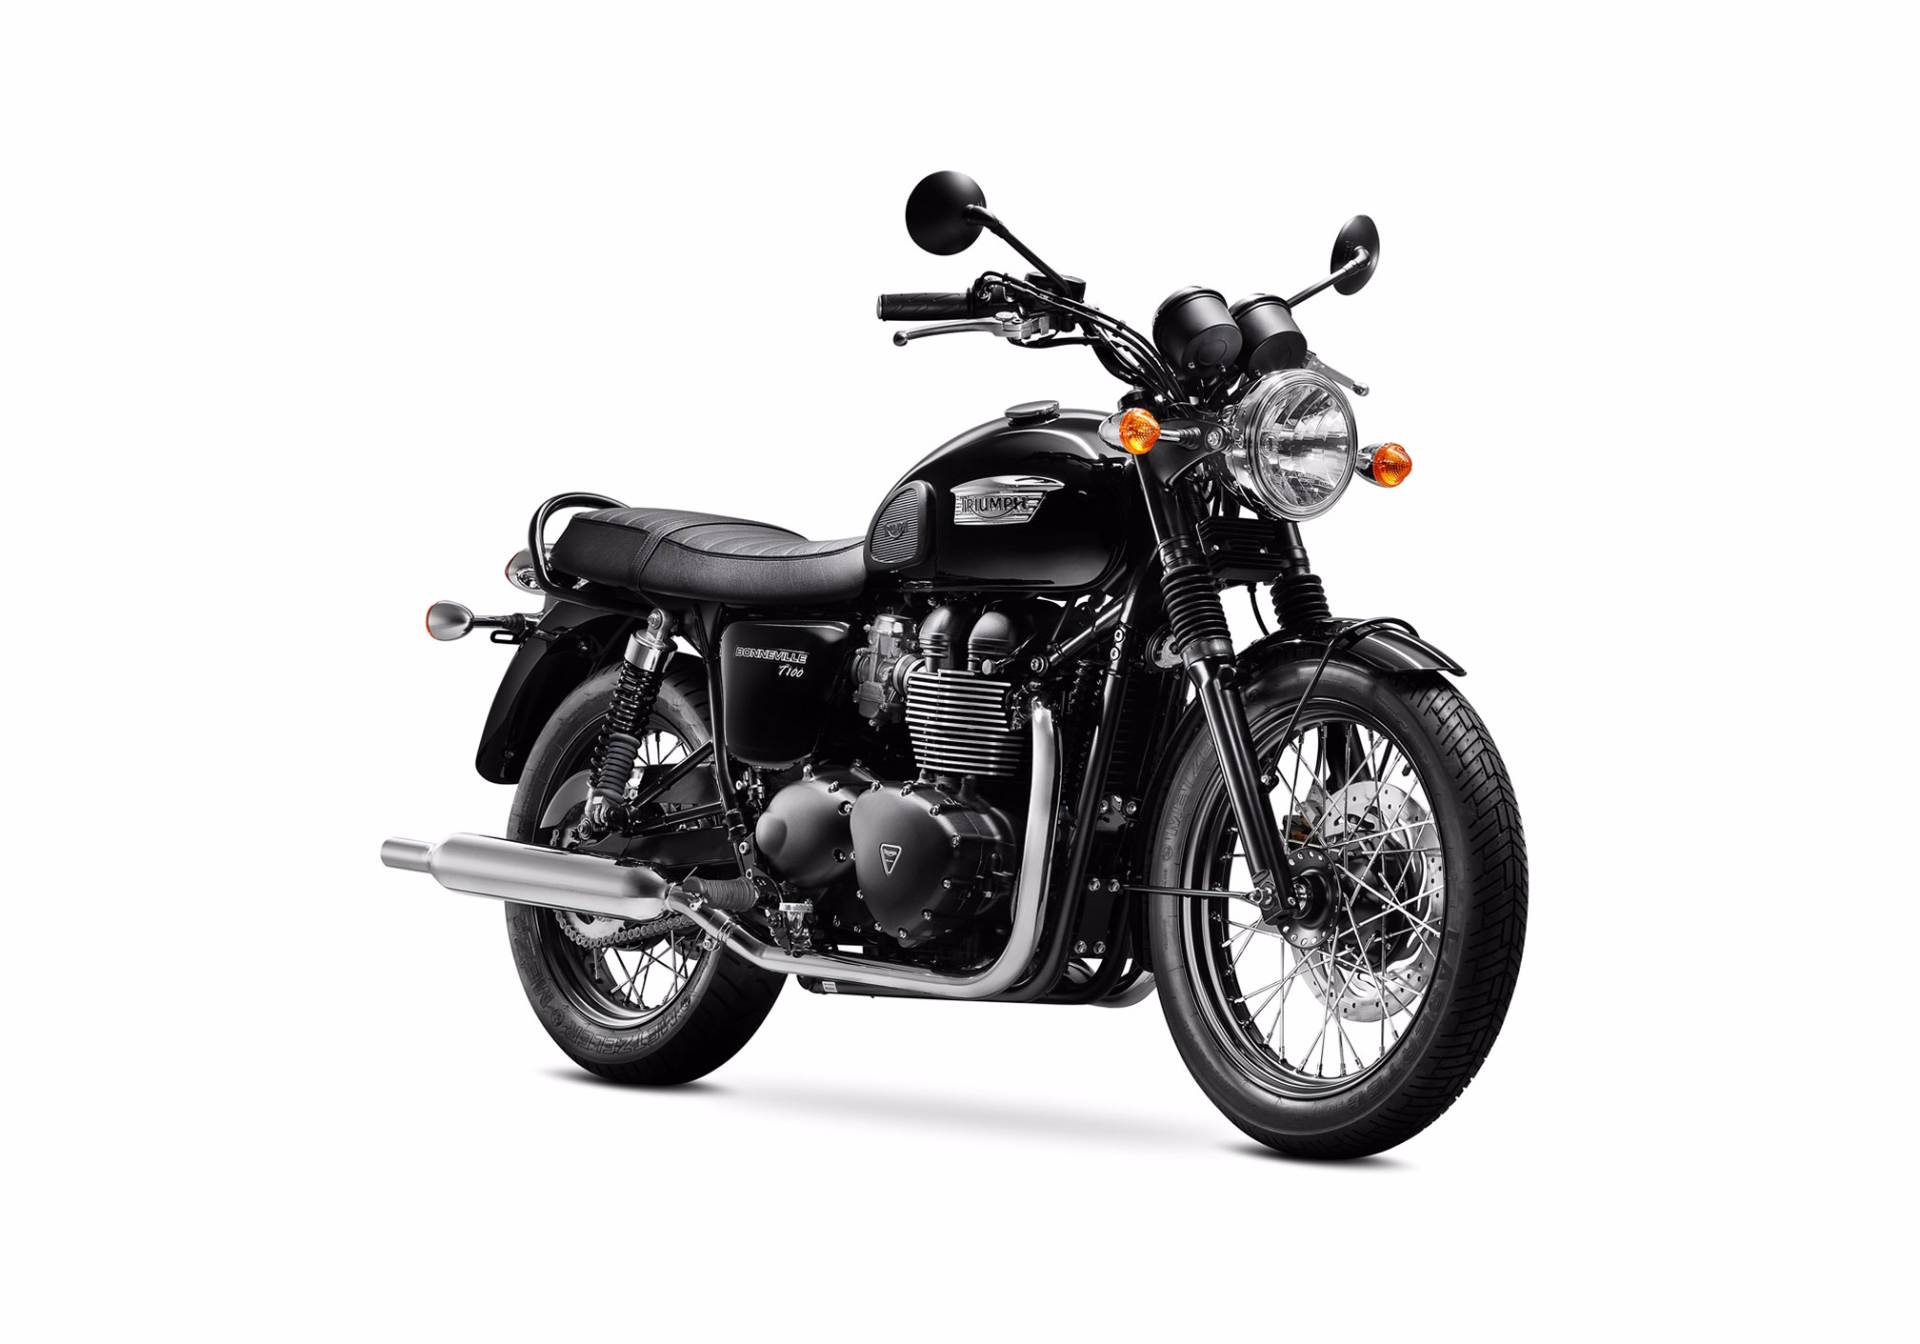 2016 Triumph Bonneville T100 Black in New Haven, Connecticut